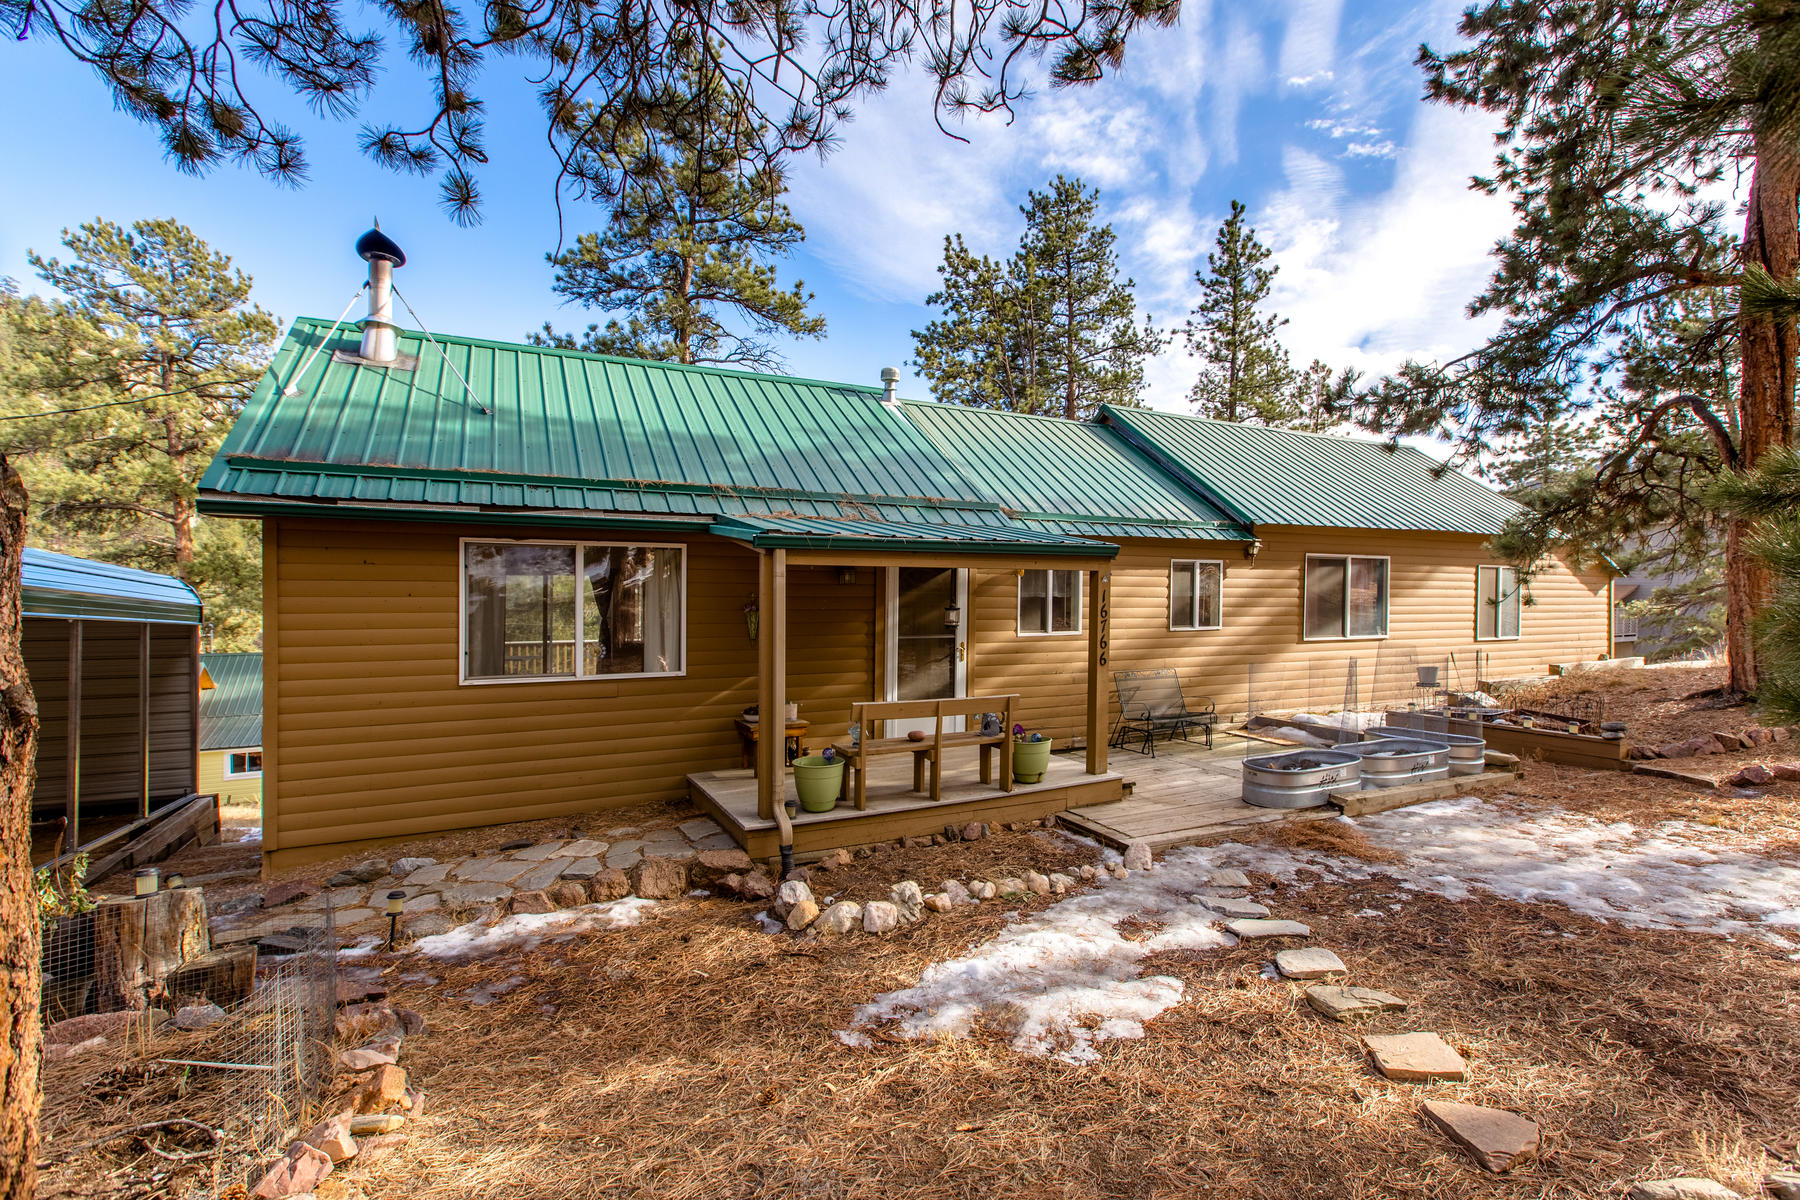 Single Family Homes for Sale at Charming Cabin in Pine 16766 South 4th Street Pine, Colorado 80470 United States